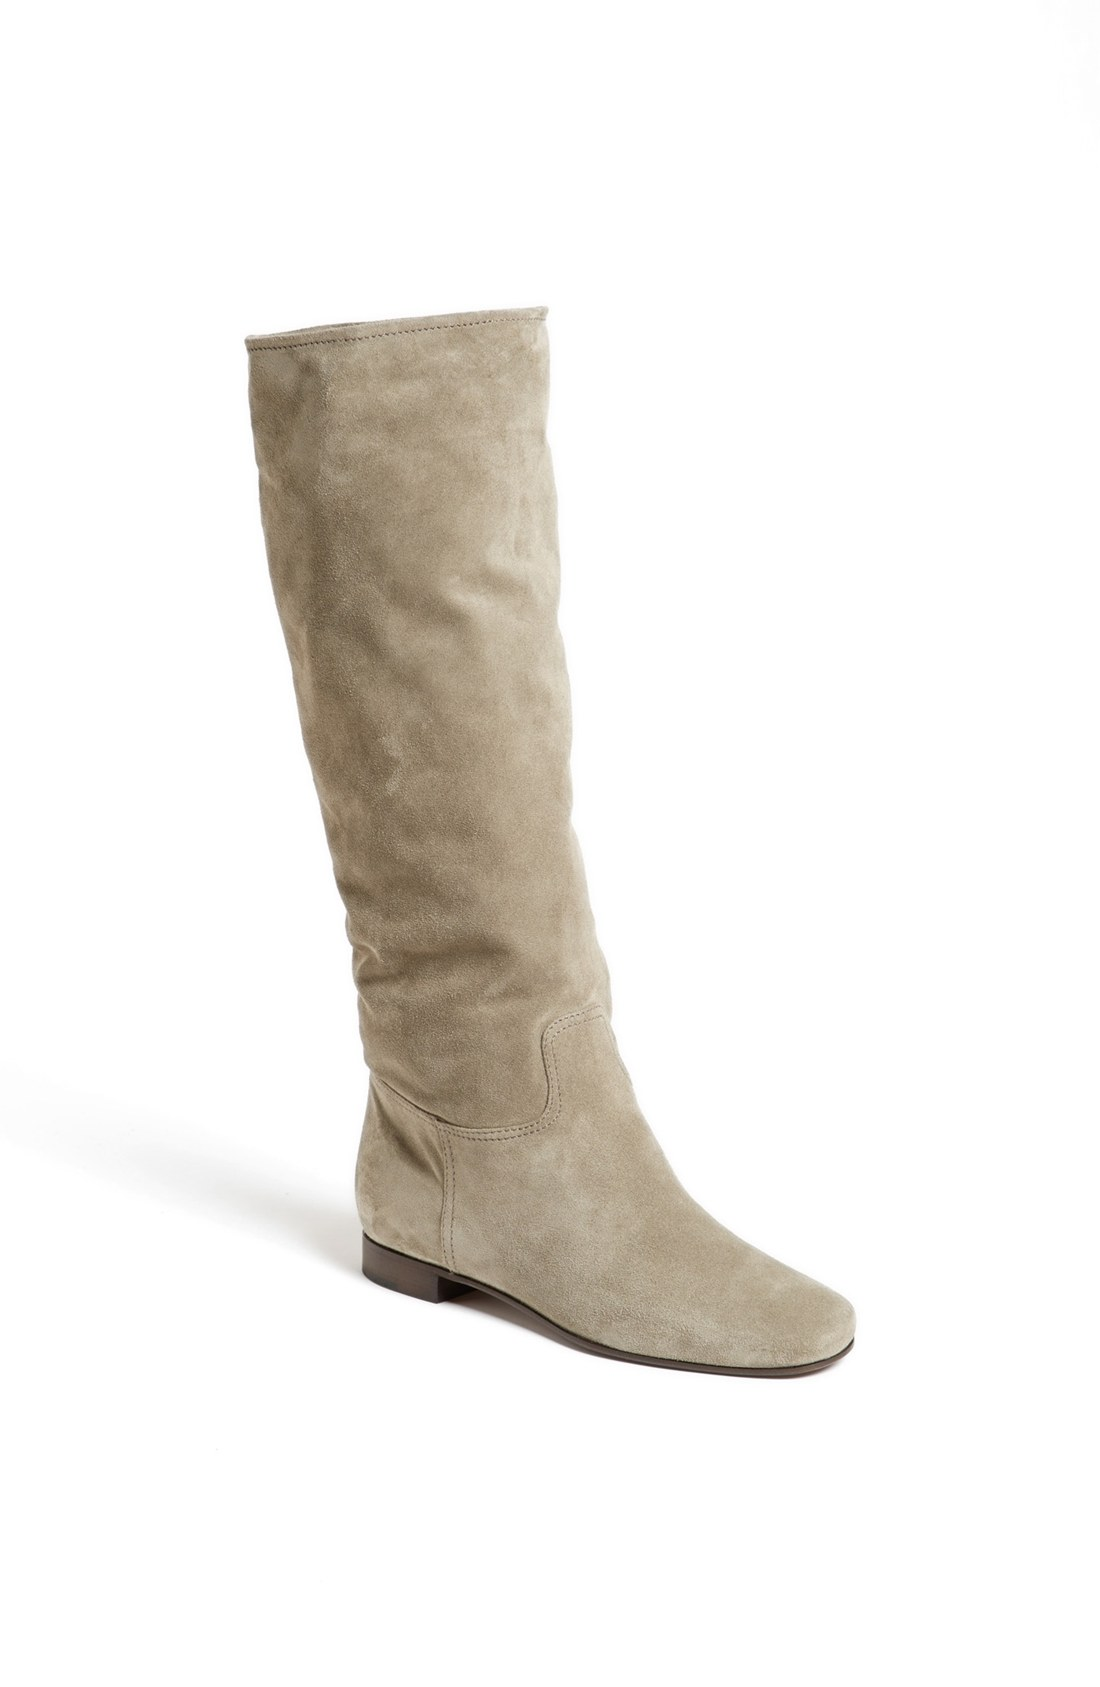 prada suede boot in gray lyst